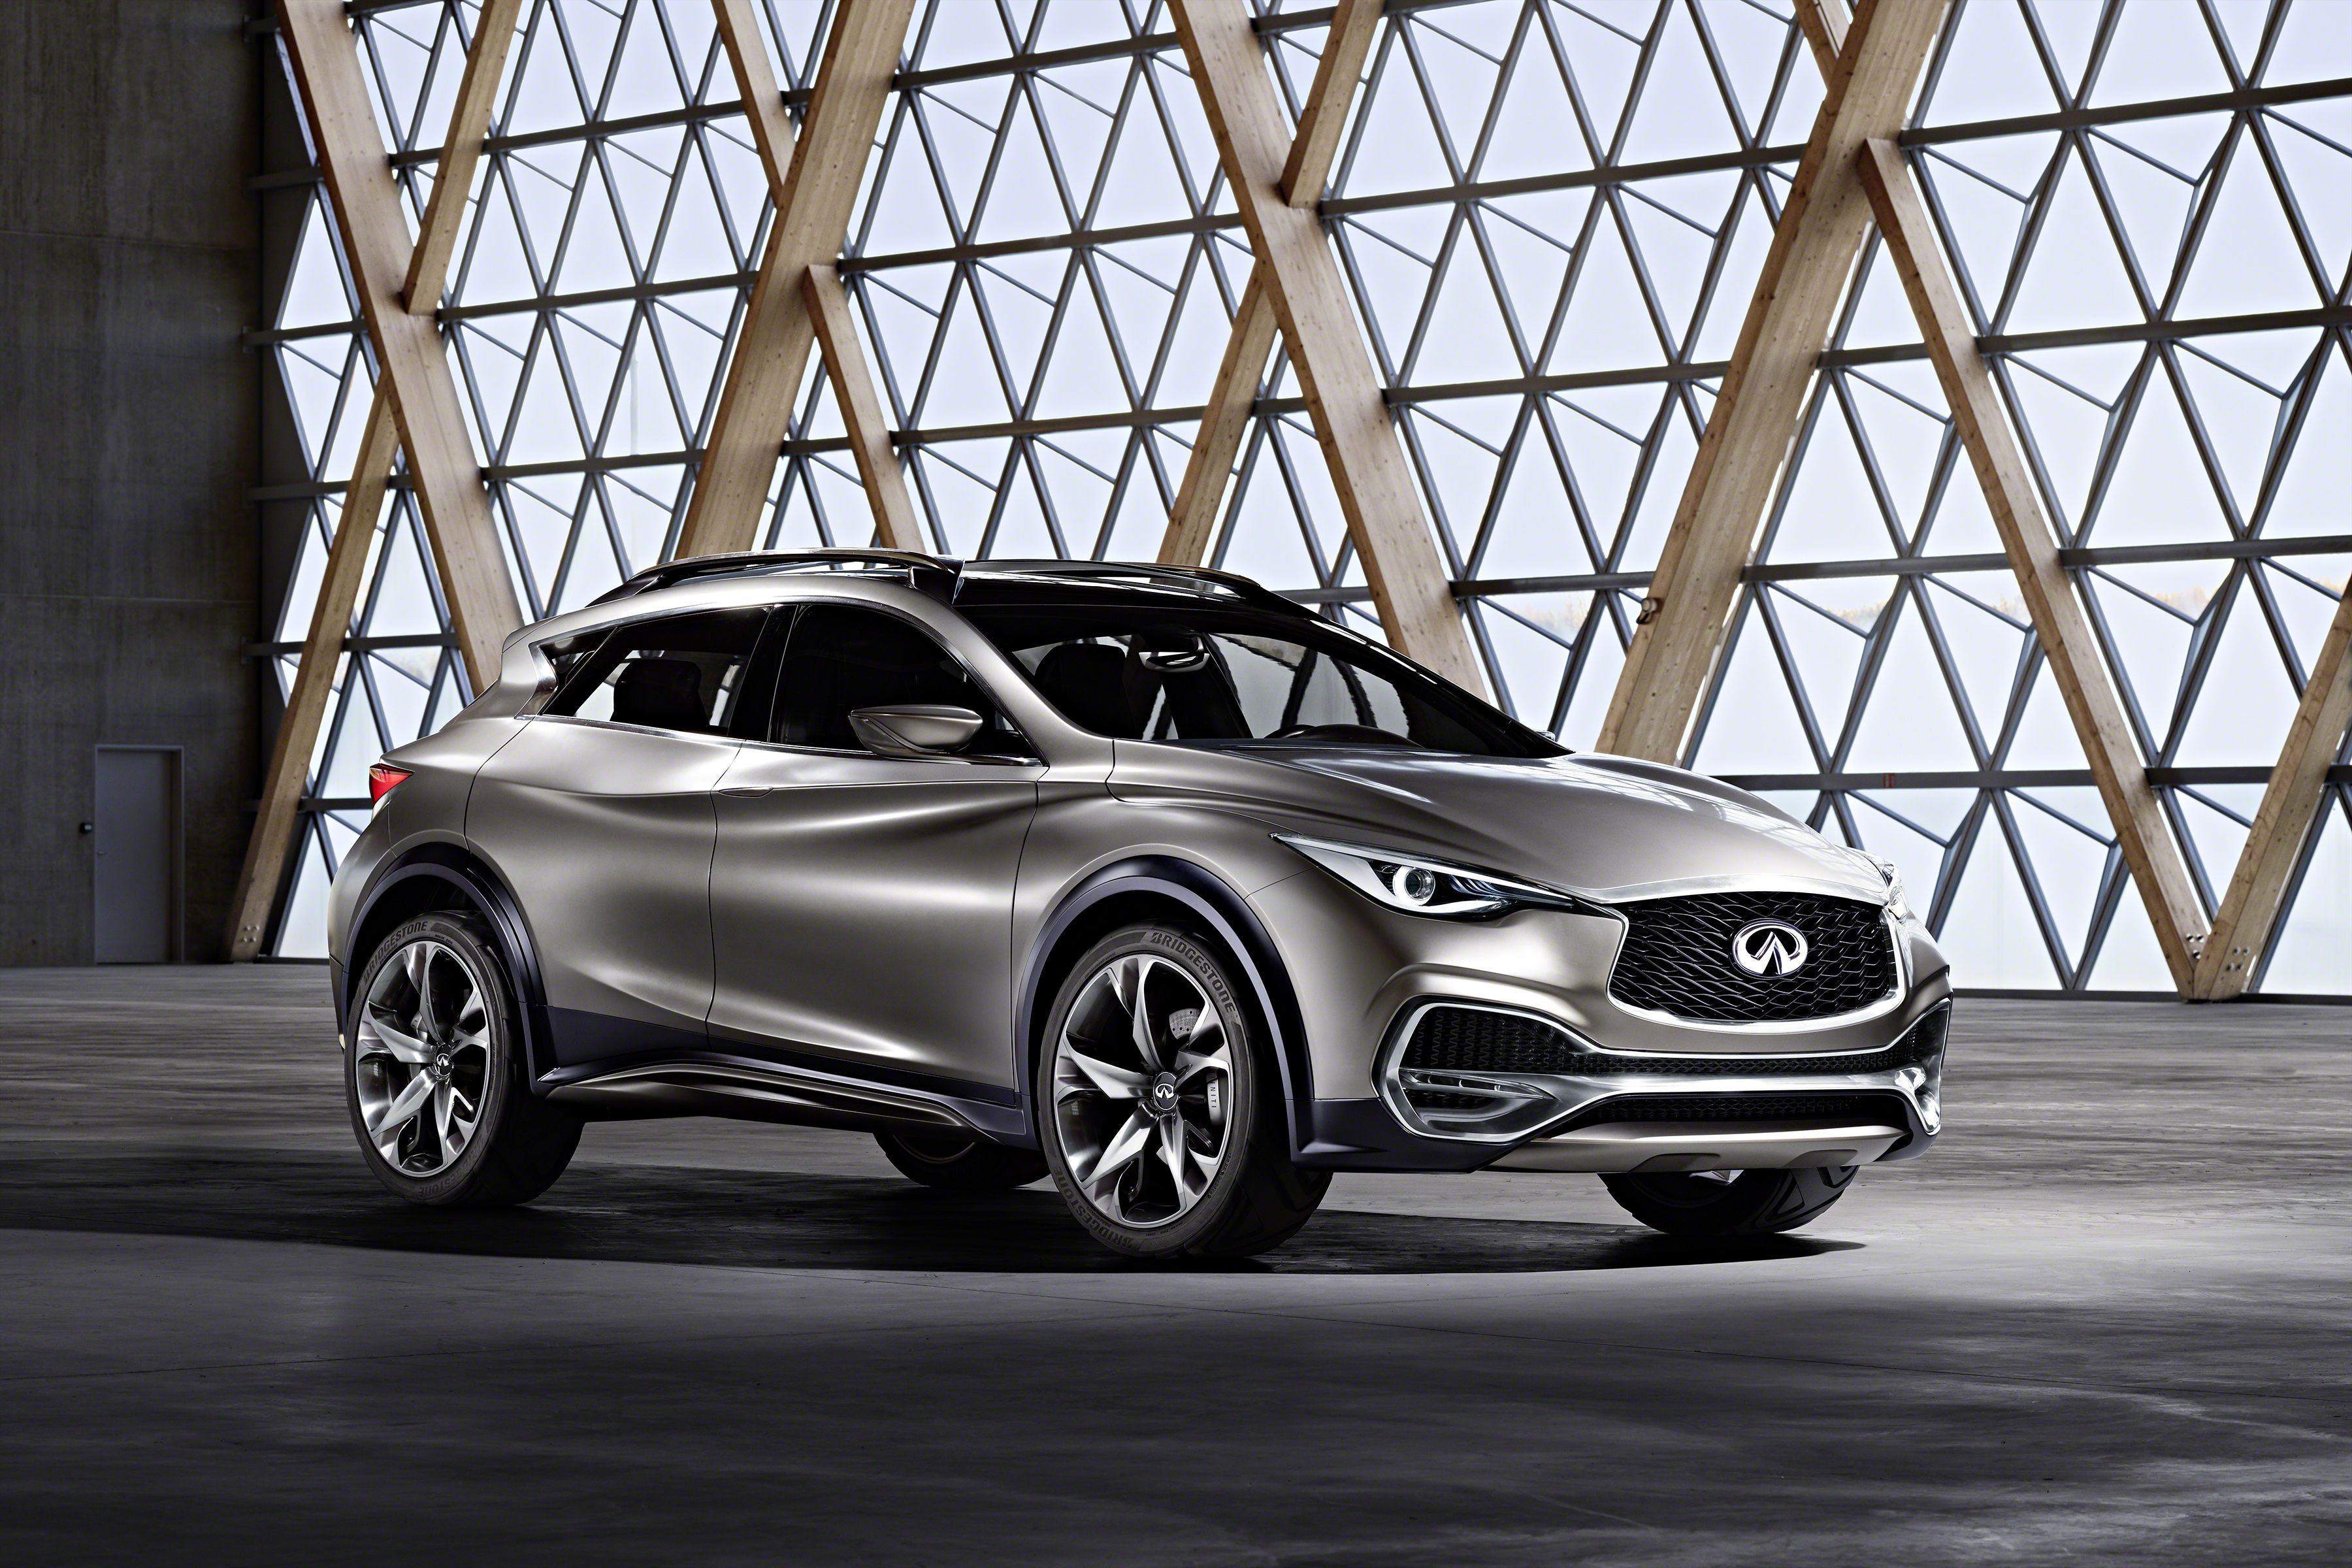 the ownership front reports infinity initial team quarter test automobile my one bhp on three drives infiniti first shadow forum